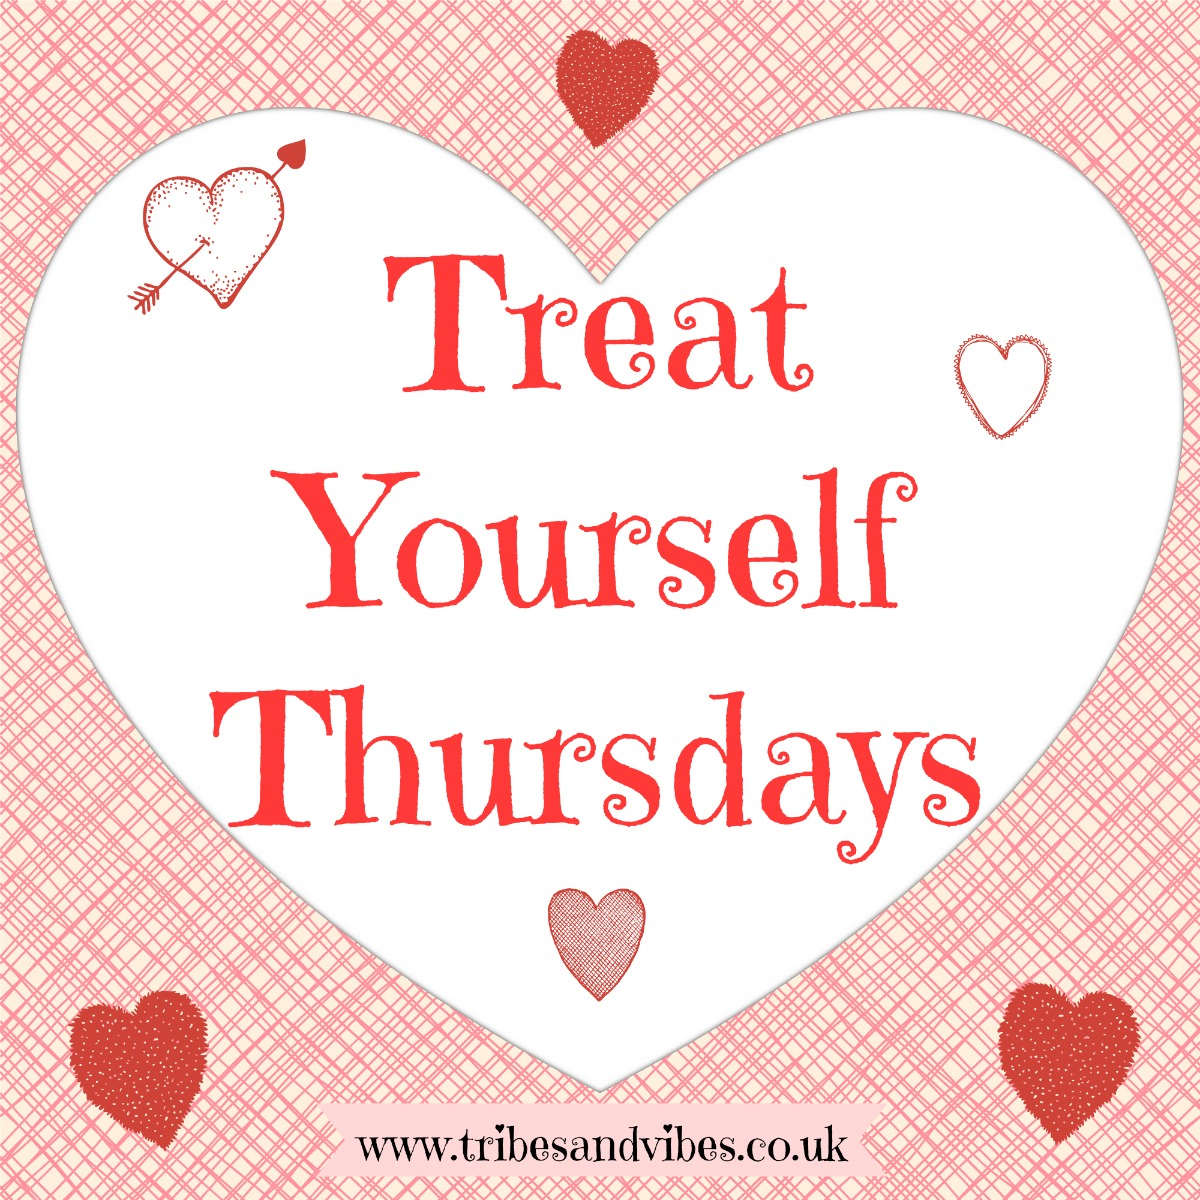 Treat Yourself Thursday Newsletter offers